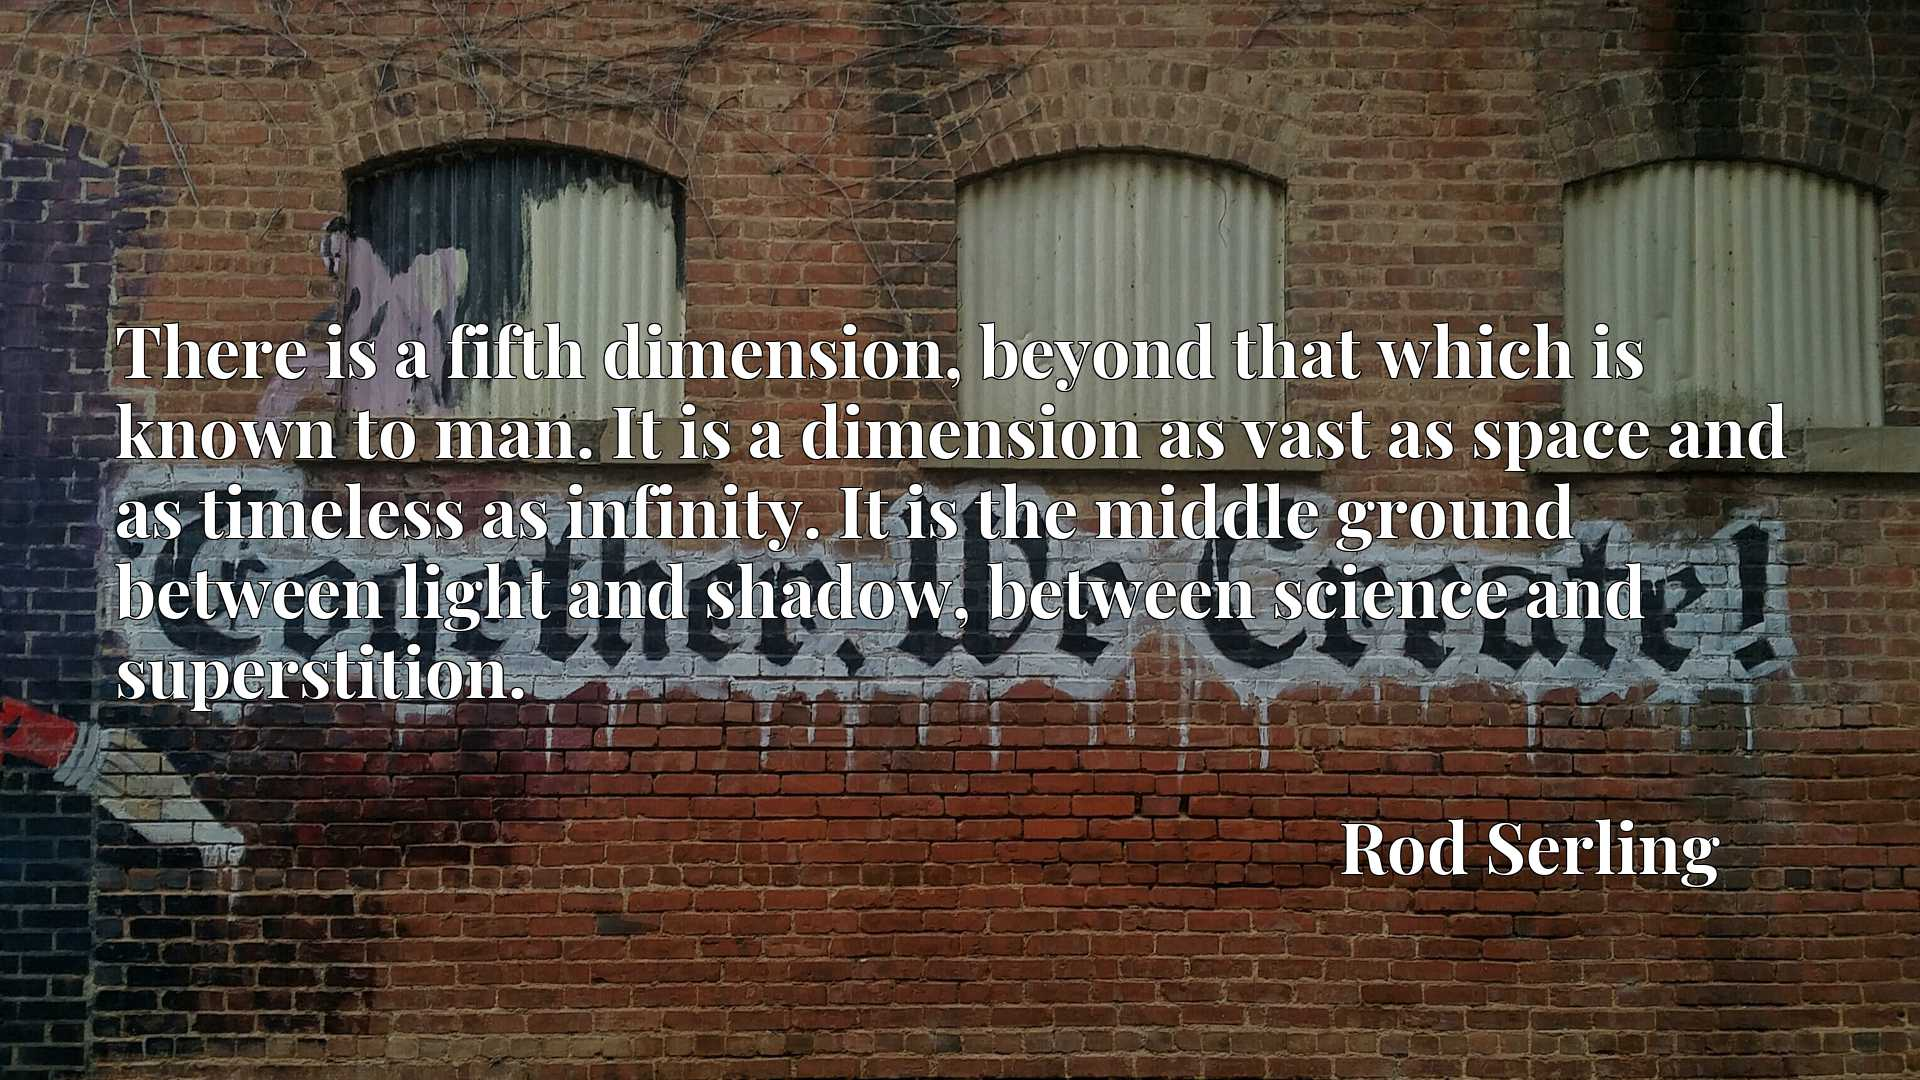 There is a fifth dimension, beyond that which is known to man. It is a dimension as vast as space and as timeless as infinity. It is the middle ground between light and shadow, between science and superstition.